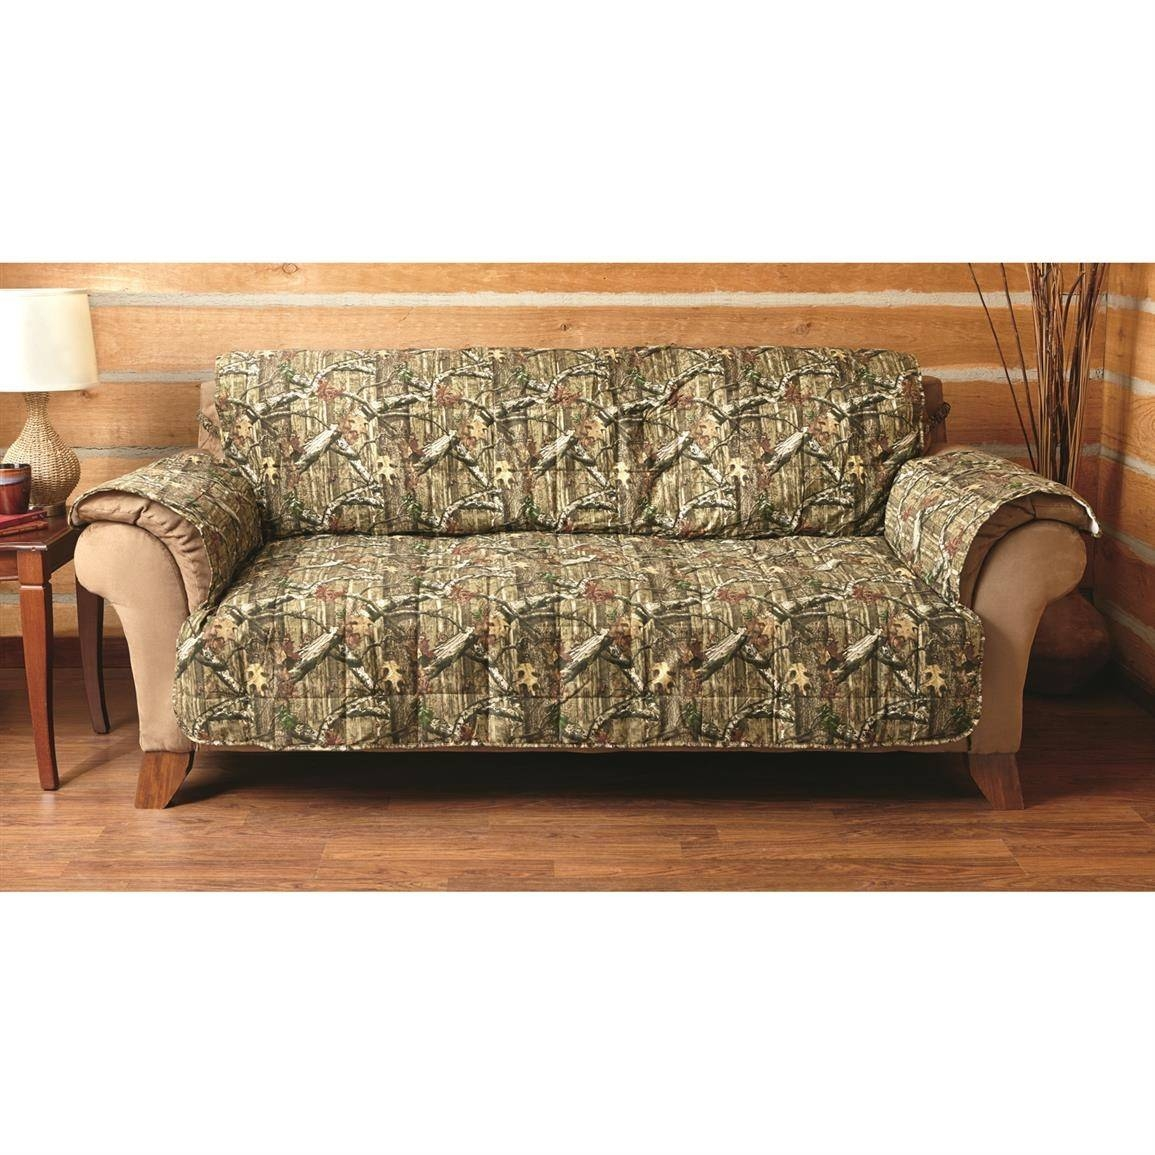 12 Photo Of Camo Sofa Cover regarding Camo Sofa Cover (Image 4 of 30)